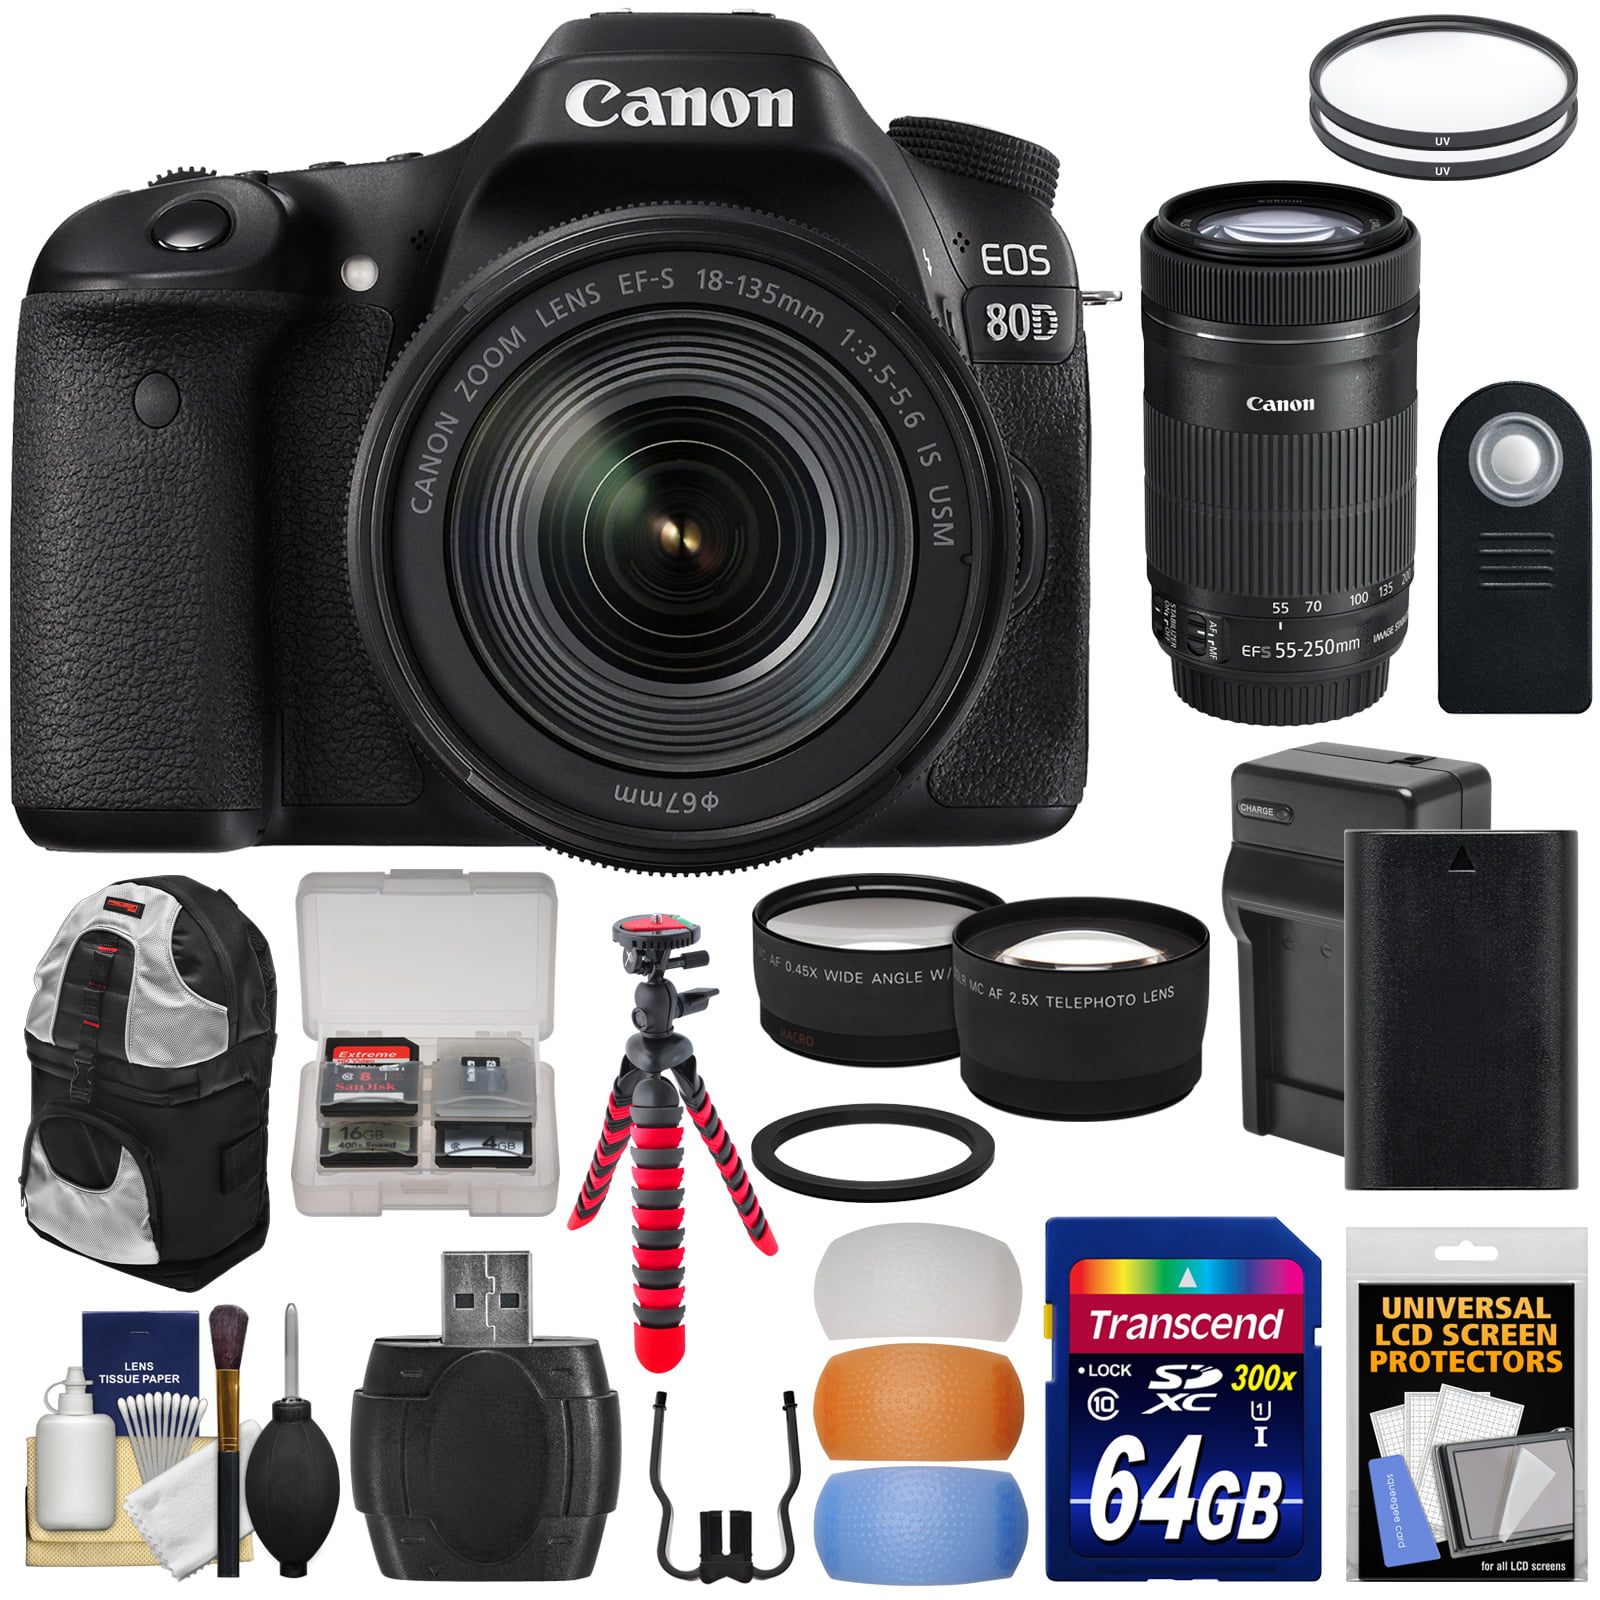 Canon EOS 80D Wi-Fi Digital SLR Camera & 18-135mm IS USM with 55-250mm IS STM Lens + 64GB Card + Battery &... by Canon